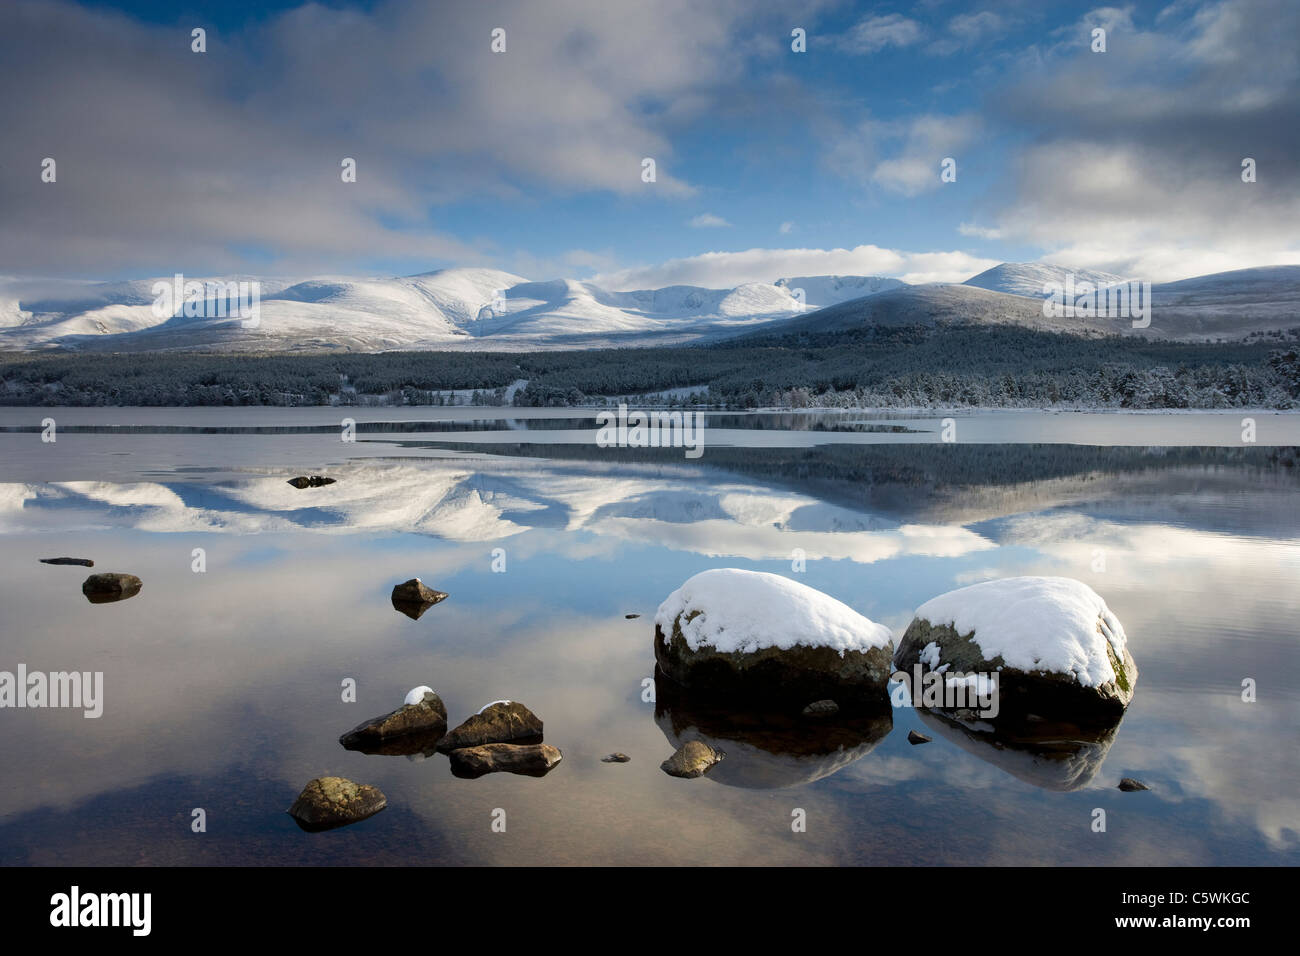 Loch Morlich and Cairngorm Mountains in winter, Cairngorms National Park, Scotland, Great Britain. - Stock Image